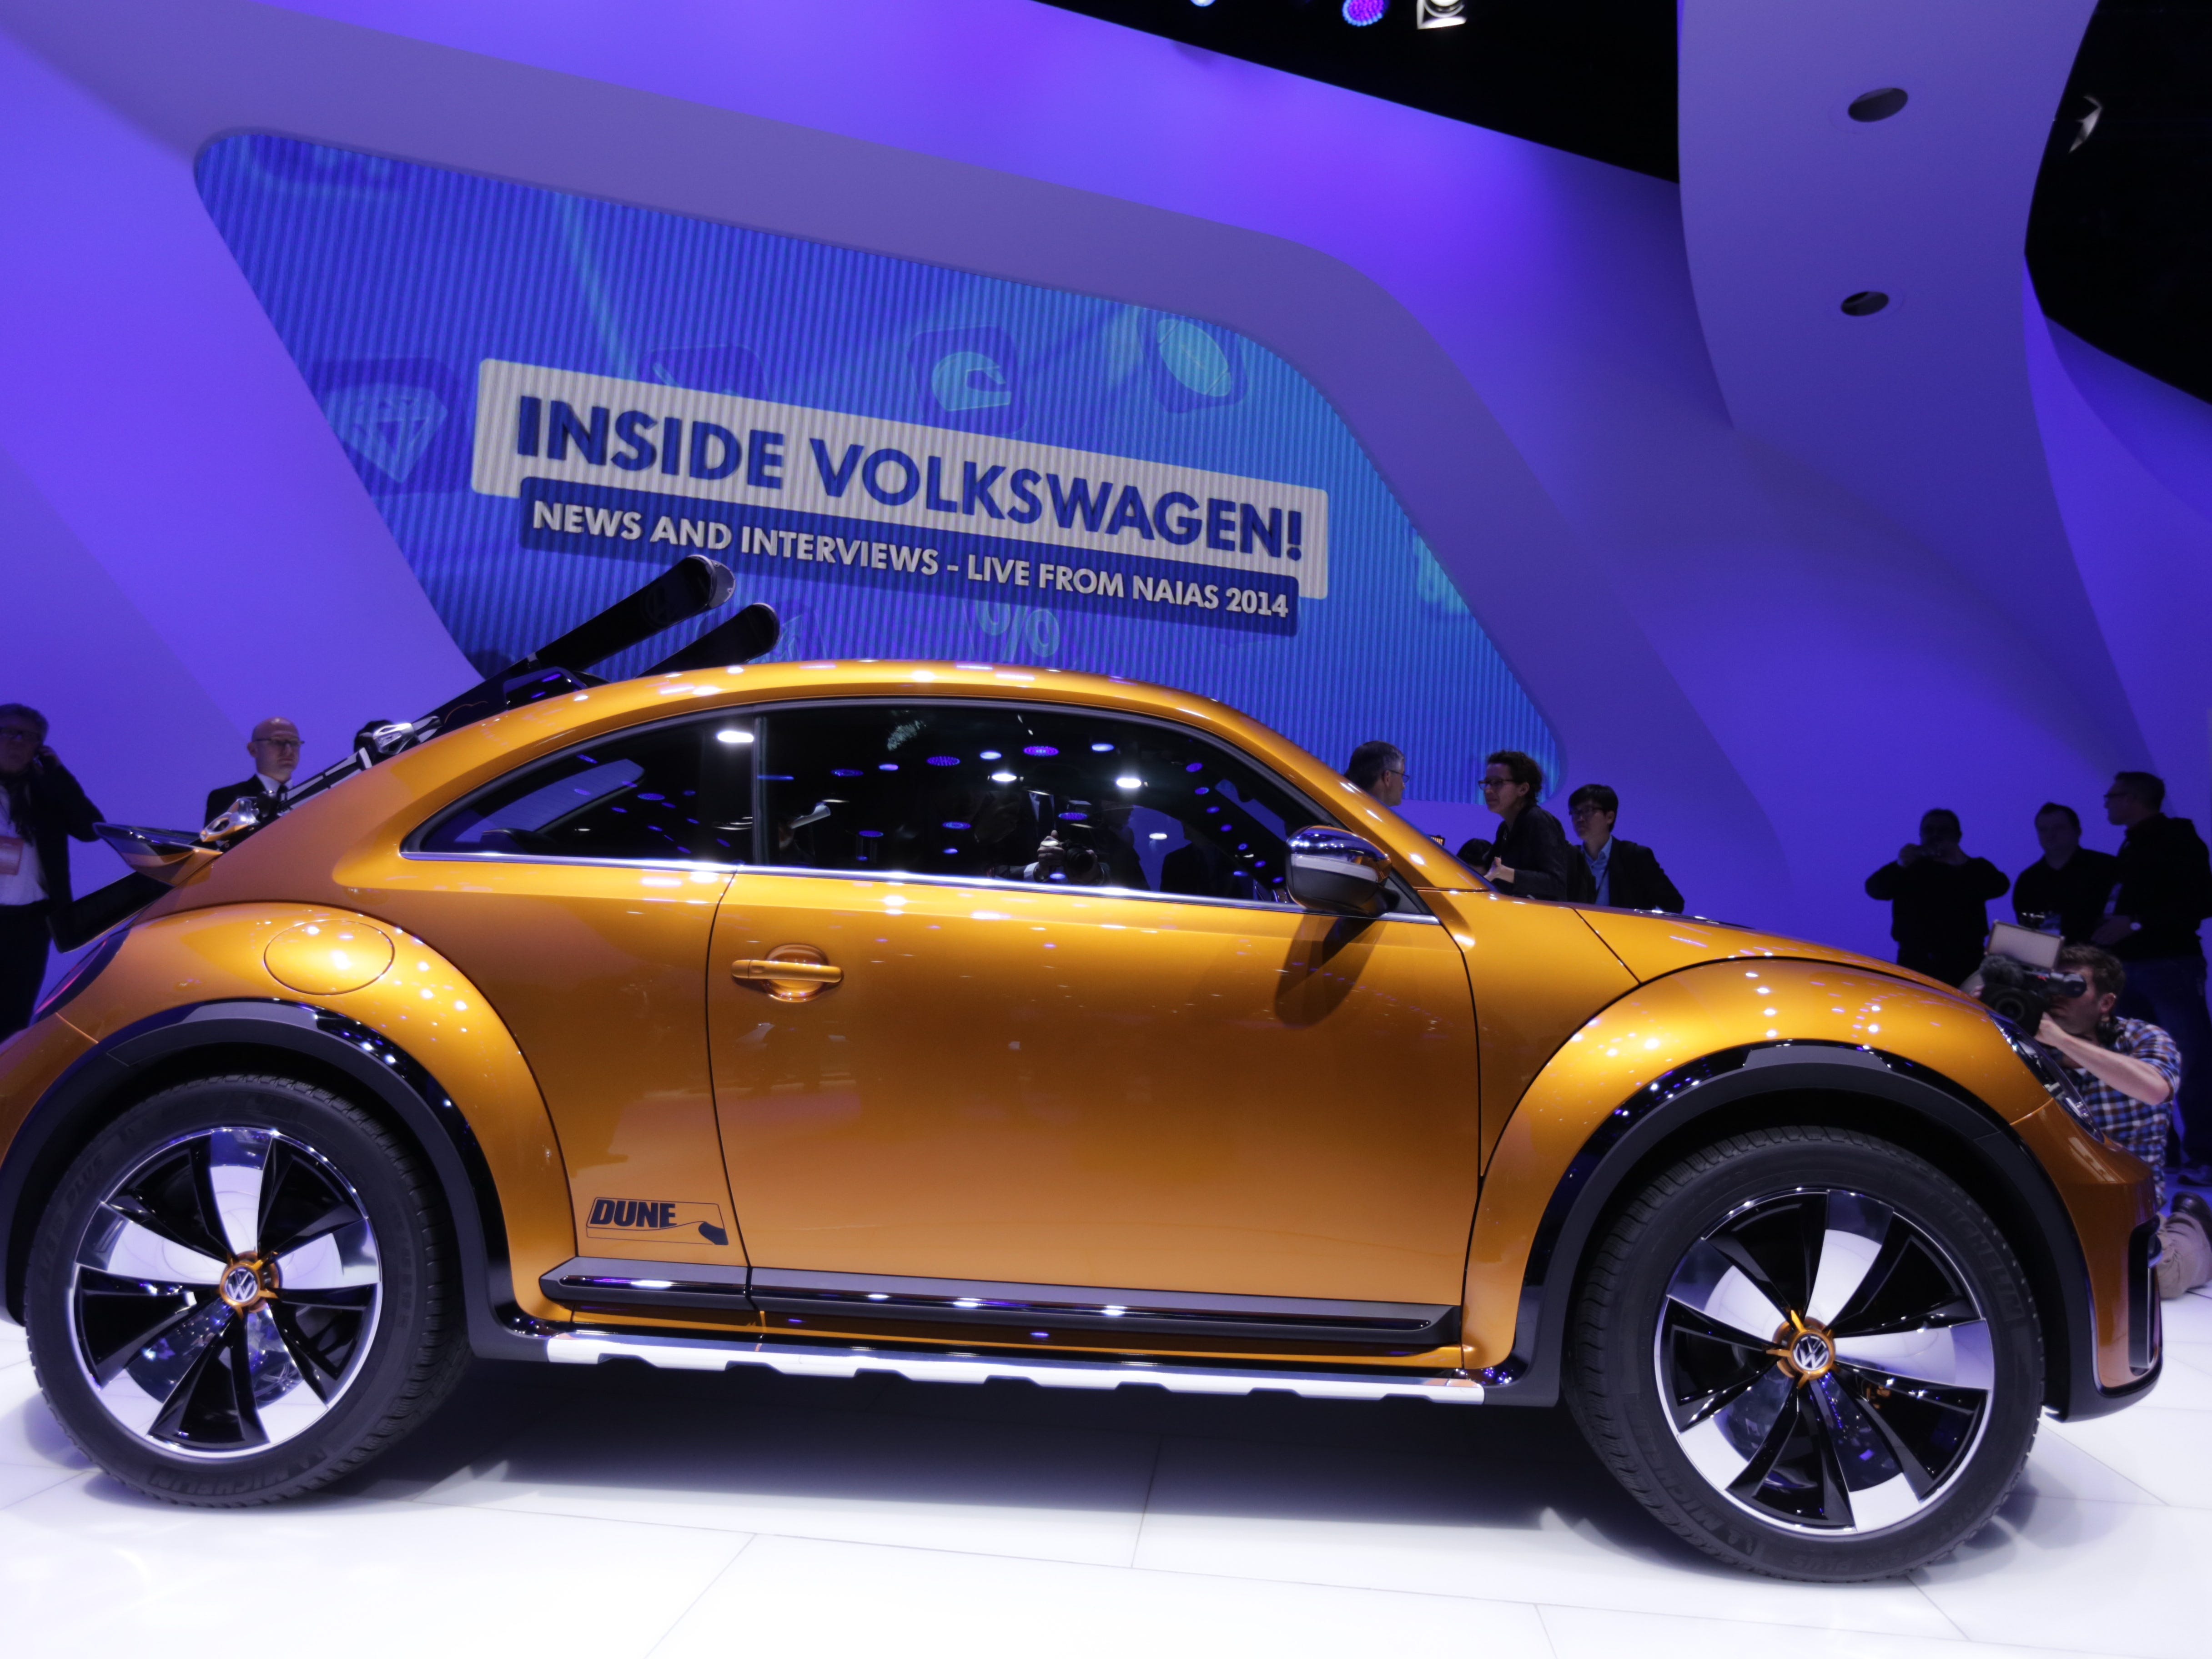 The Volkswagen Beetle Dune concept is unveiled to the media during the 2014 North American International Auto Show held at Cobo Center in downtown Detroit on Monday, Jan. 13, 2014.